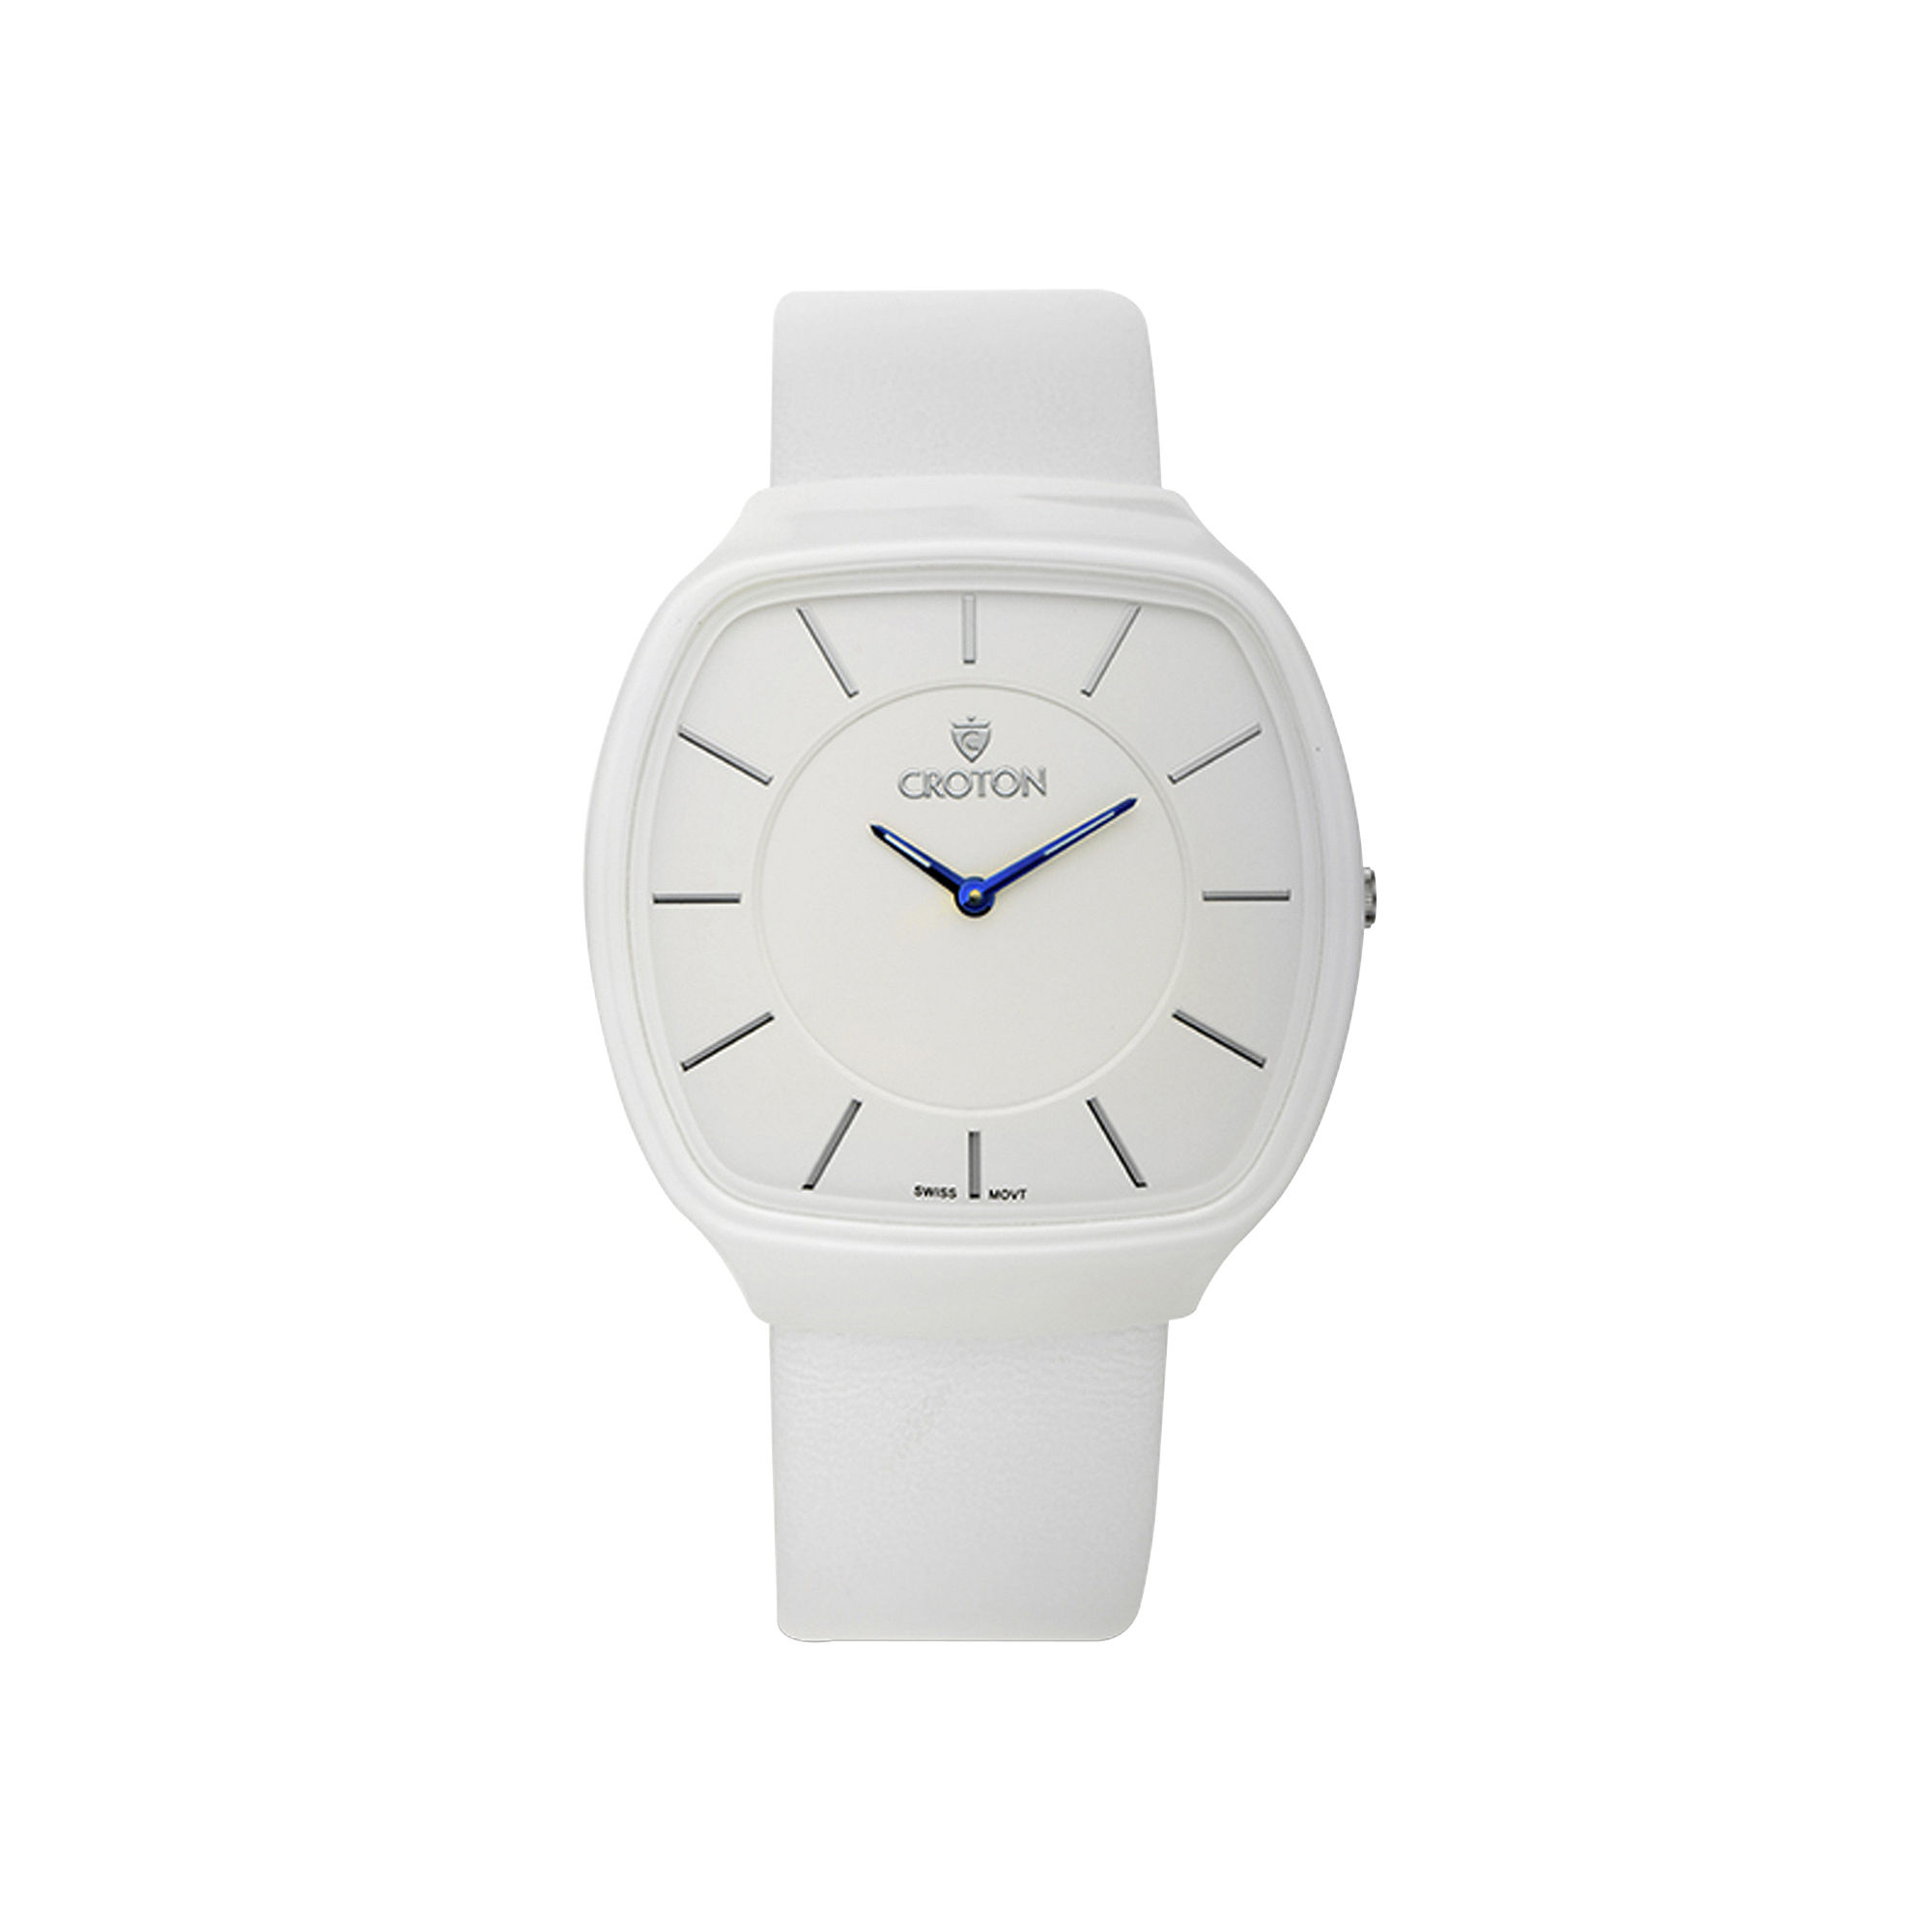 Croton Mens White Leather Strap Square Watch